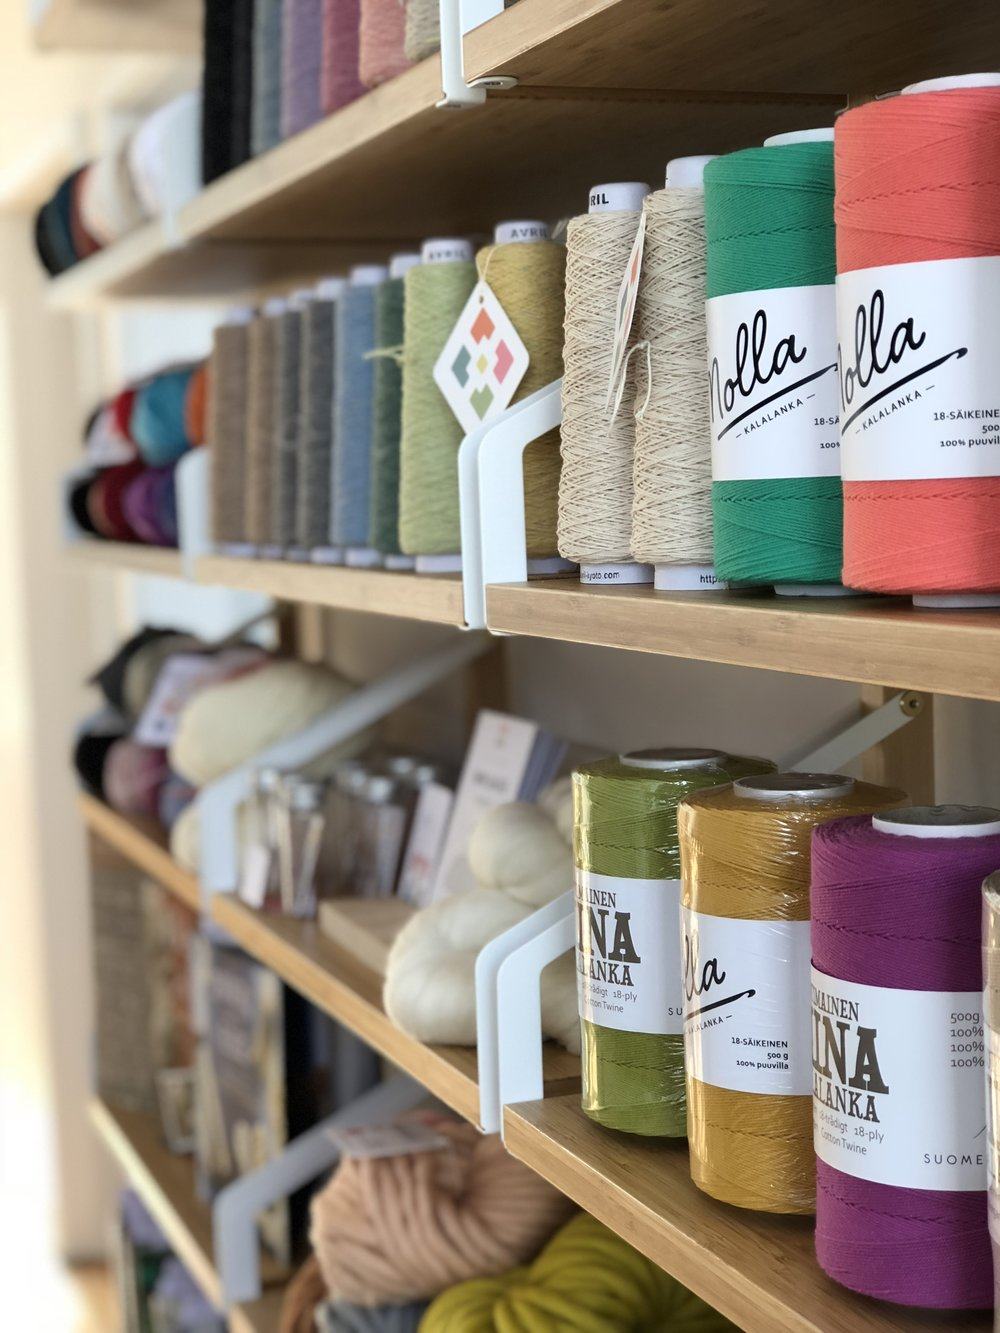 In 2018, Loom & Spindle moved out of home and into their first studio shop space! This light-filled hideaway in Melbourne's south-east offers a tranquil setting for learning and crafting. Come in to experience our range of craft tools, fibre and yarn. Stay to practice your craft and workshop your projects. - LOCATEDFirst Floor, 16 Station St, Frankston VIC 3199REGULAR HOURSSunday, 10am to 2pm